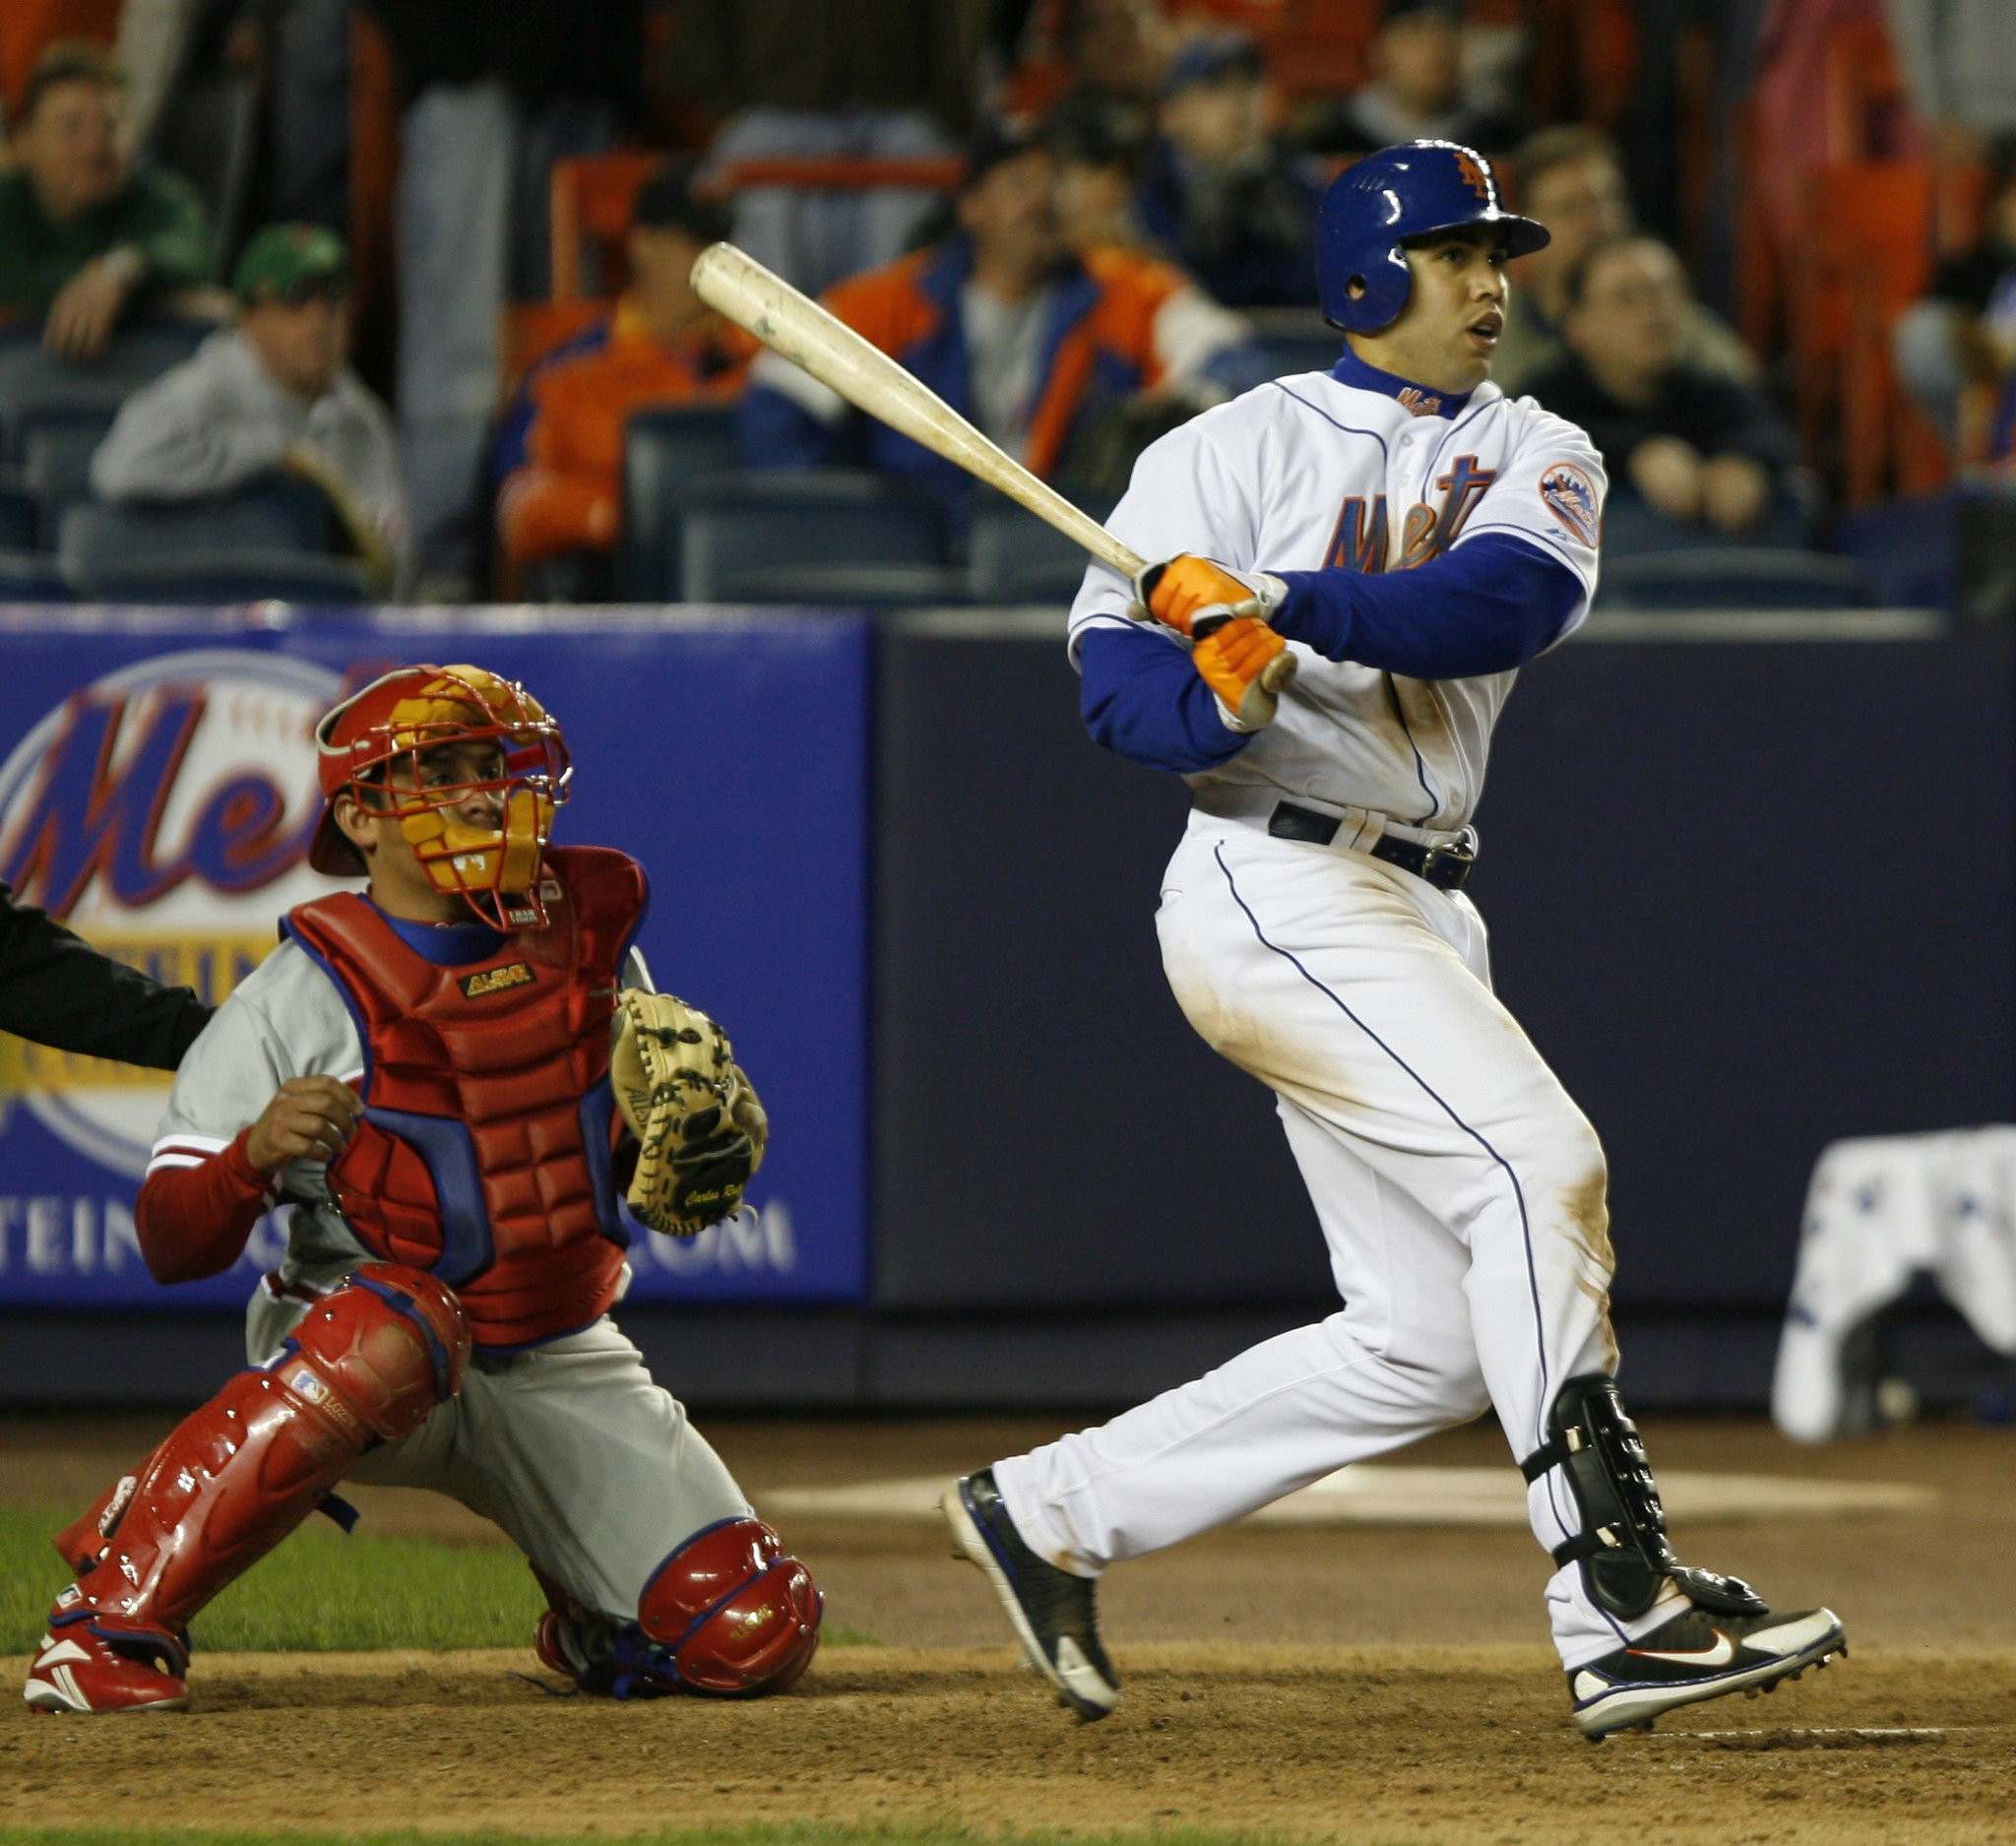 Carlos Beltran S Ultimate Contribution To Mets May Be Zach